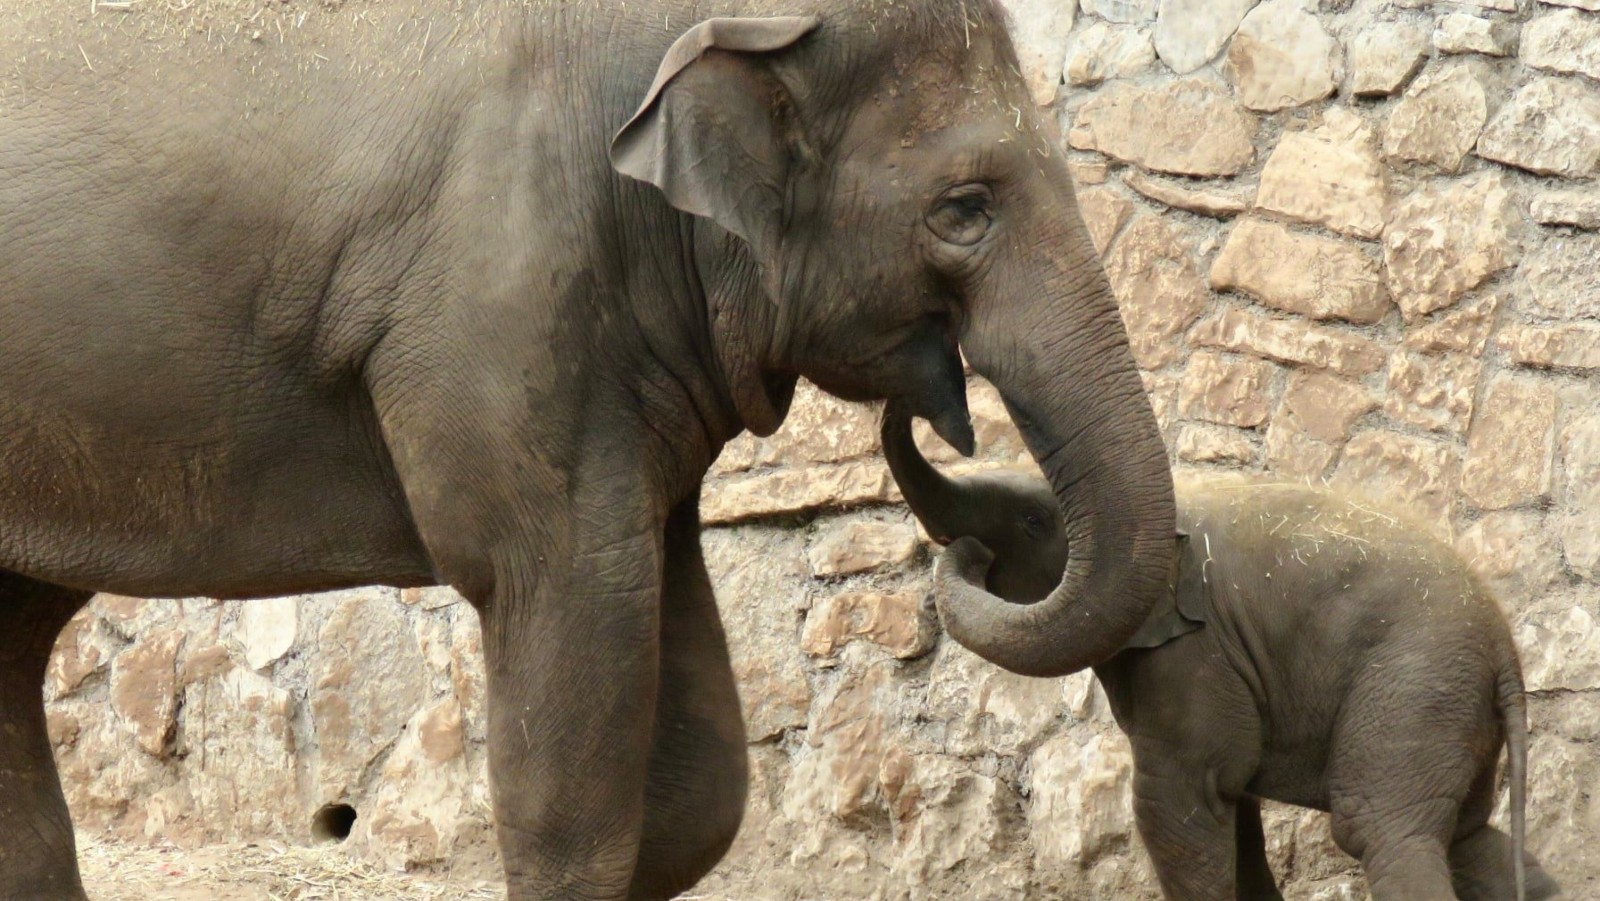 Tusk Force: Zoo Elephants Protect Their Young When They Hear An Air-Raid Siren